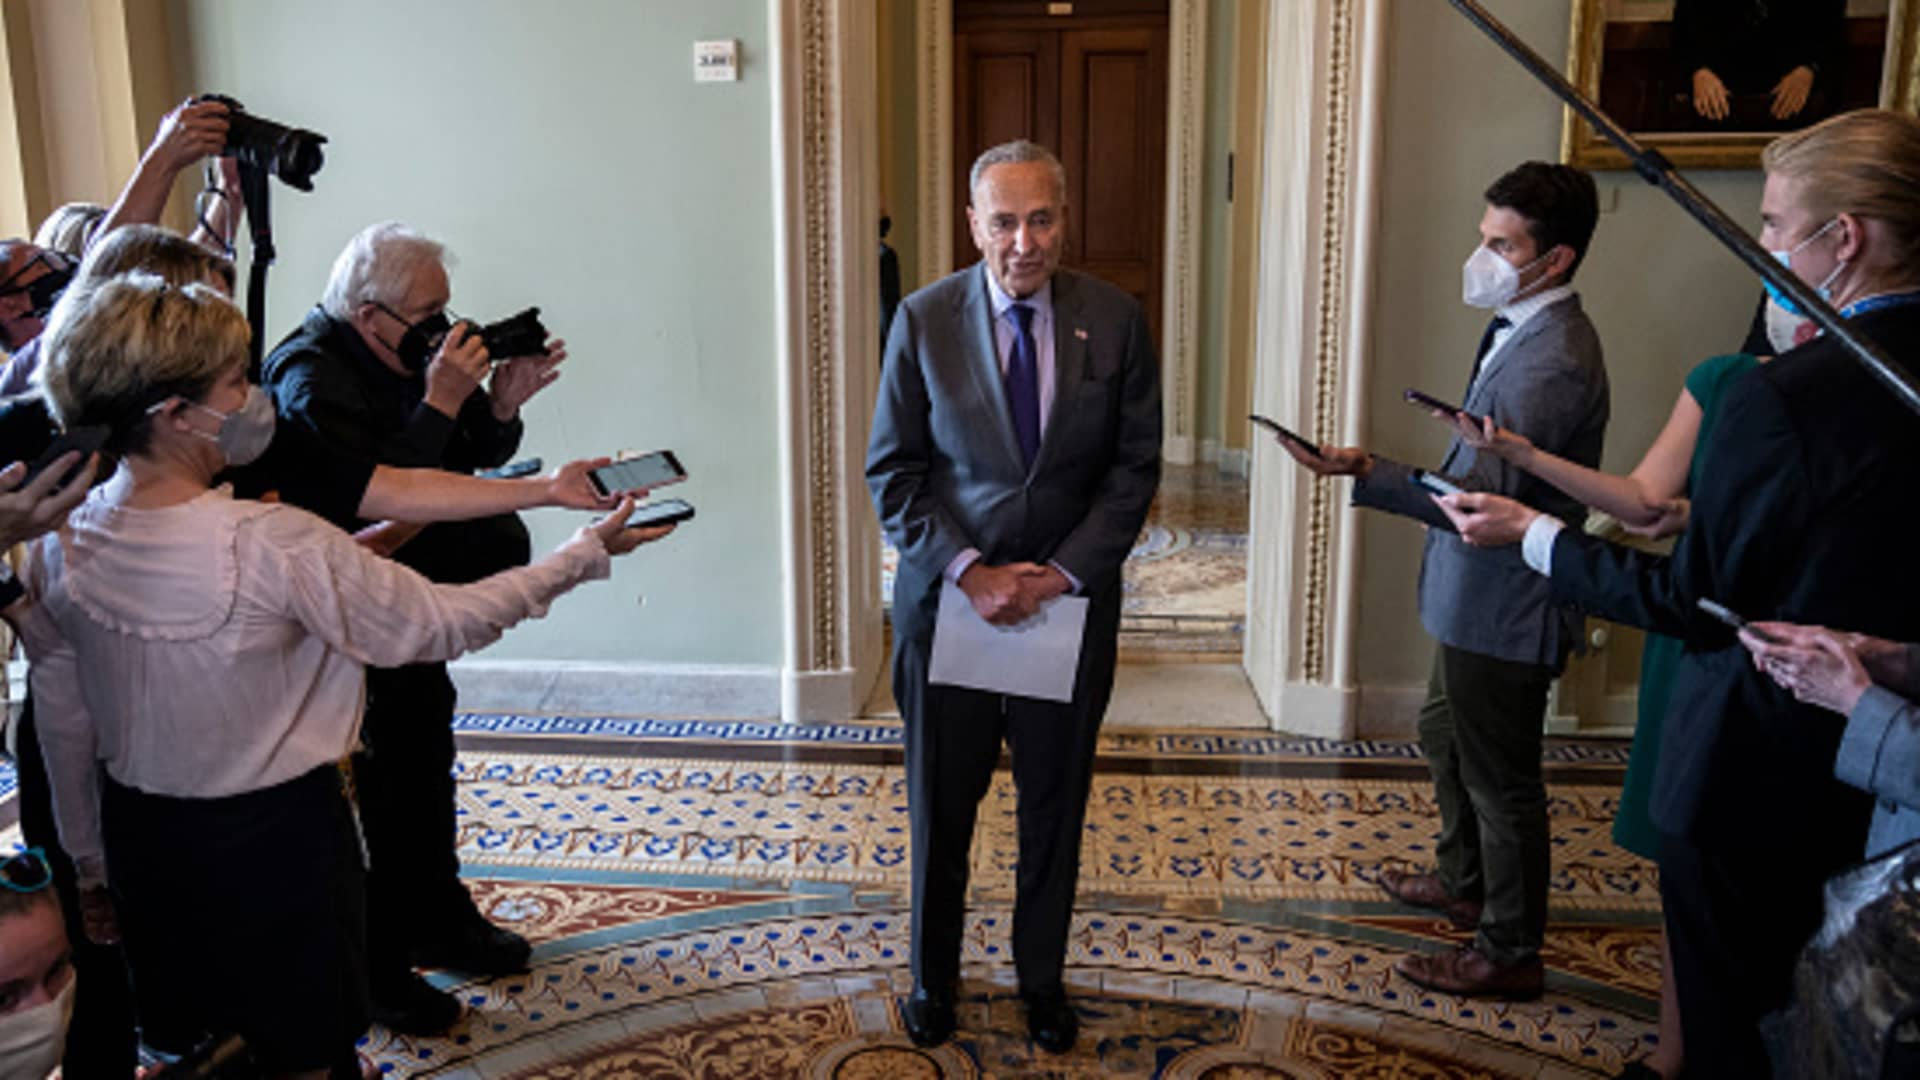 Senate Majority Leader Chuck Schumer (D-NY) speaks briefly to reporters after a meeting with Senate Democrats at the U.S. Capitol on July 28, 2021 in Washington, DC.